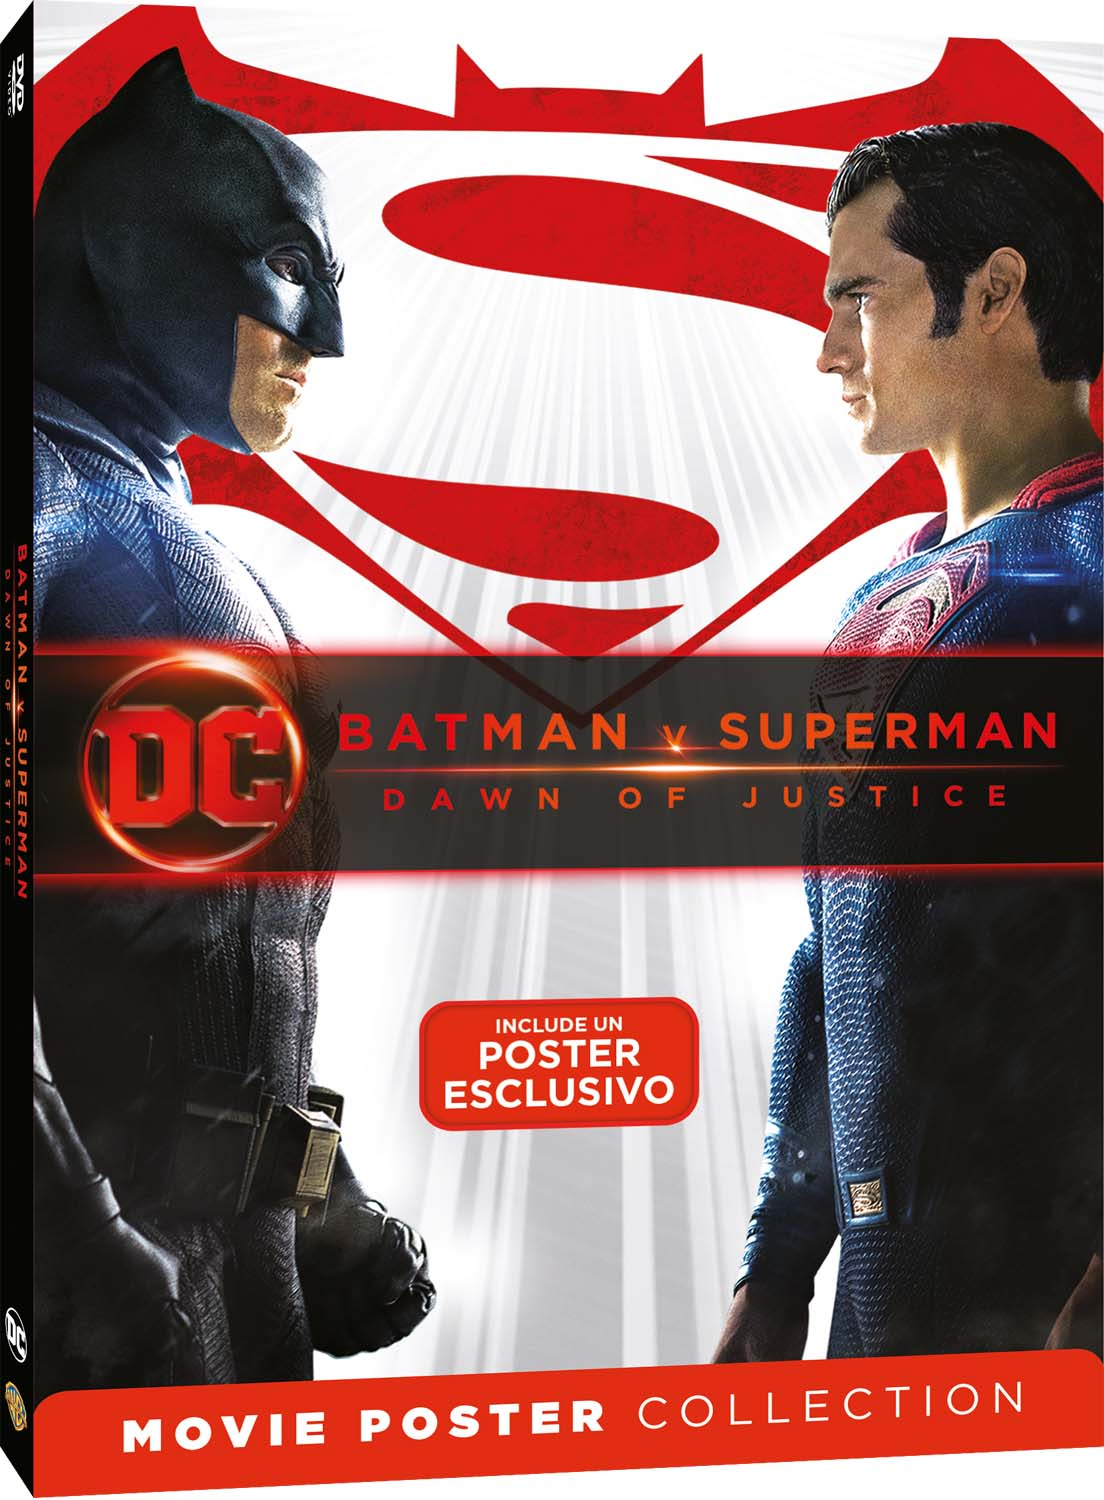 BATMAN V SUPERMAN - DAWN OF JUSTICE - MOVIE POSTER EDITION (DVD)